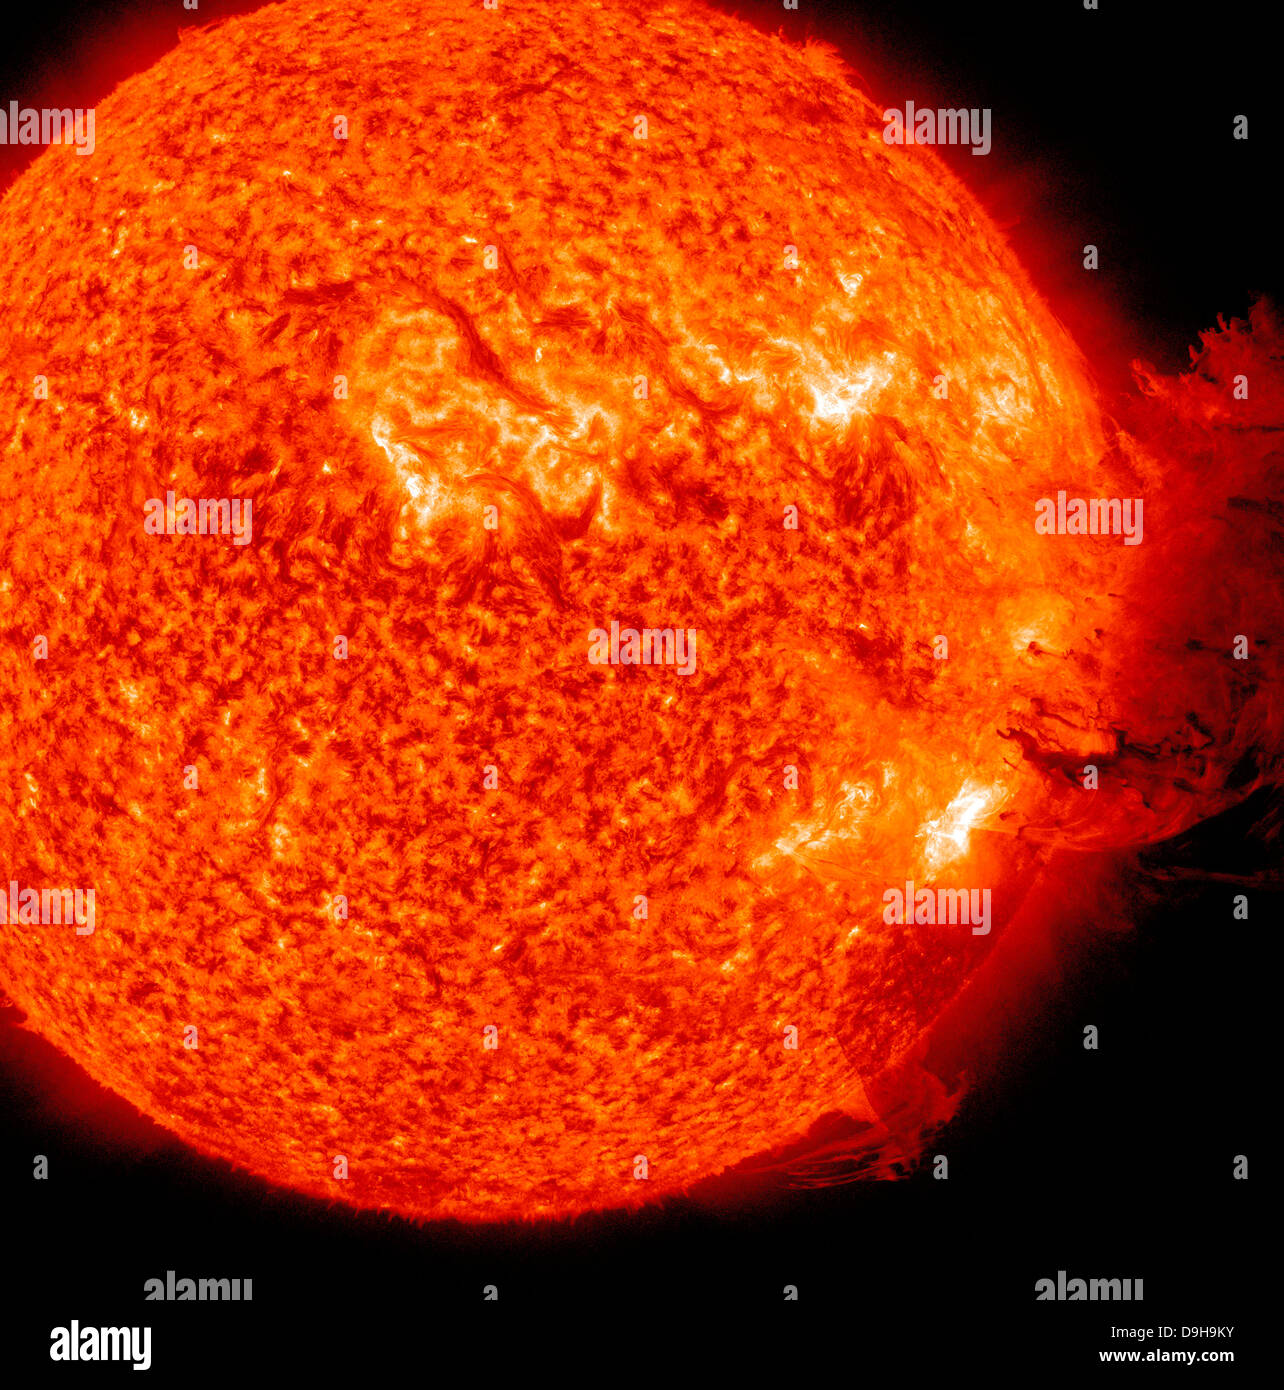 A M-2 solar flare with coronal mass ejection. - Stock Image